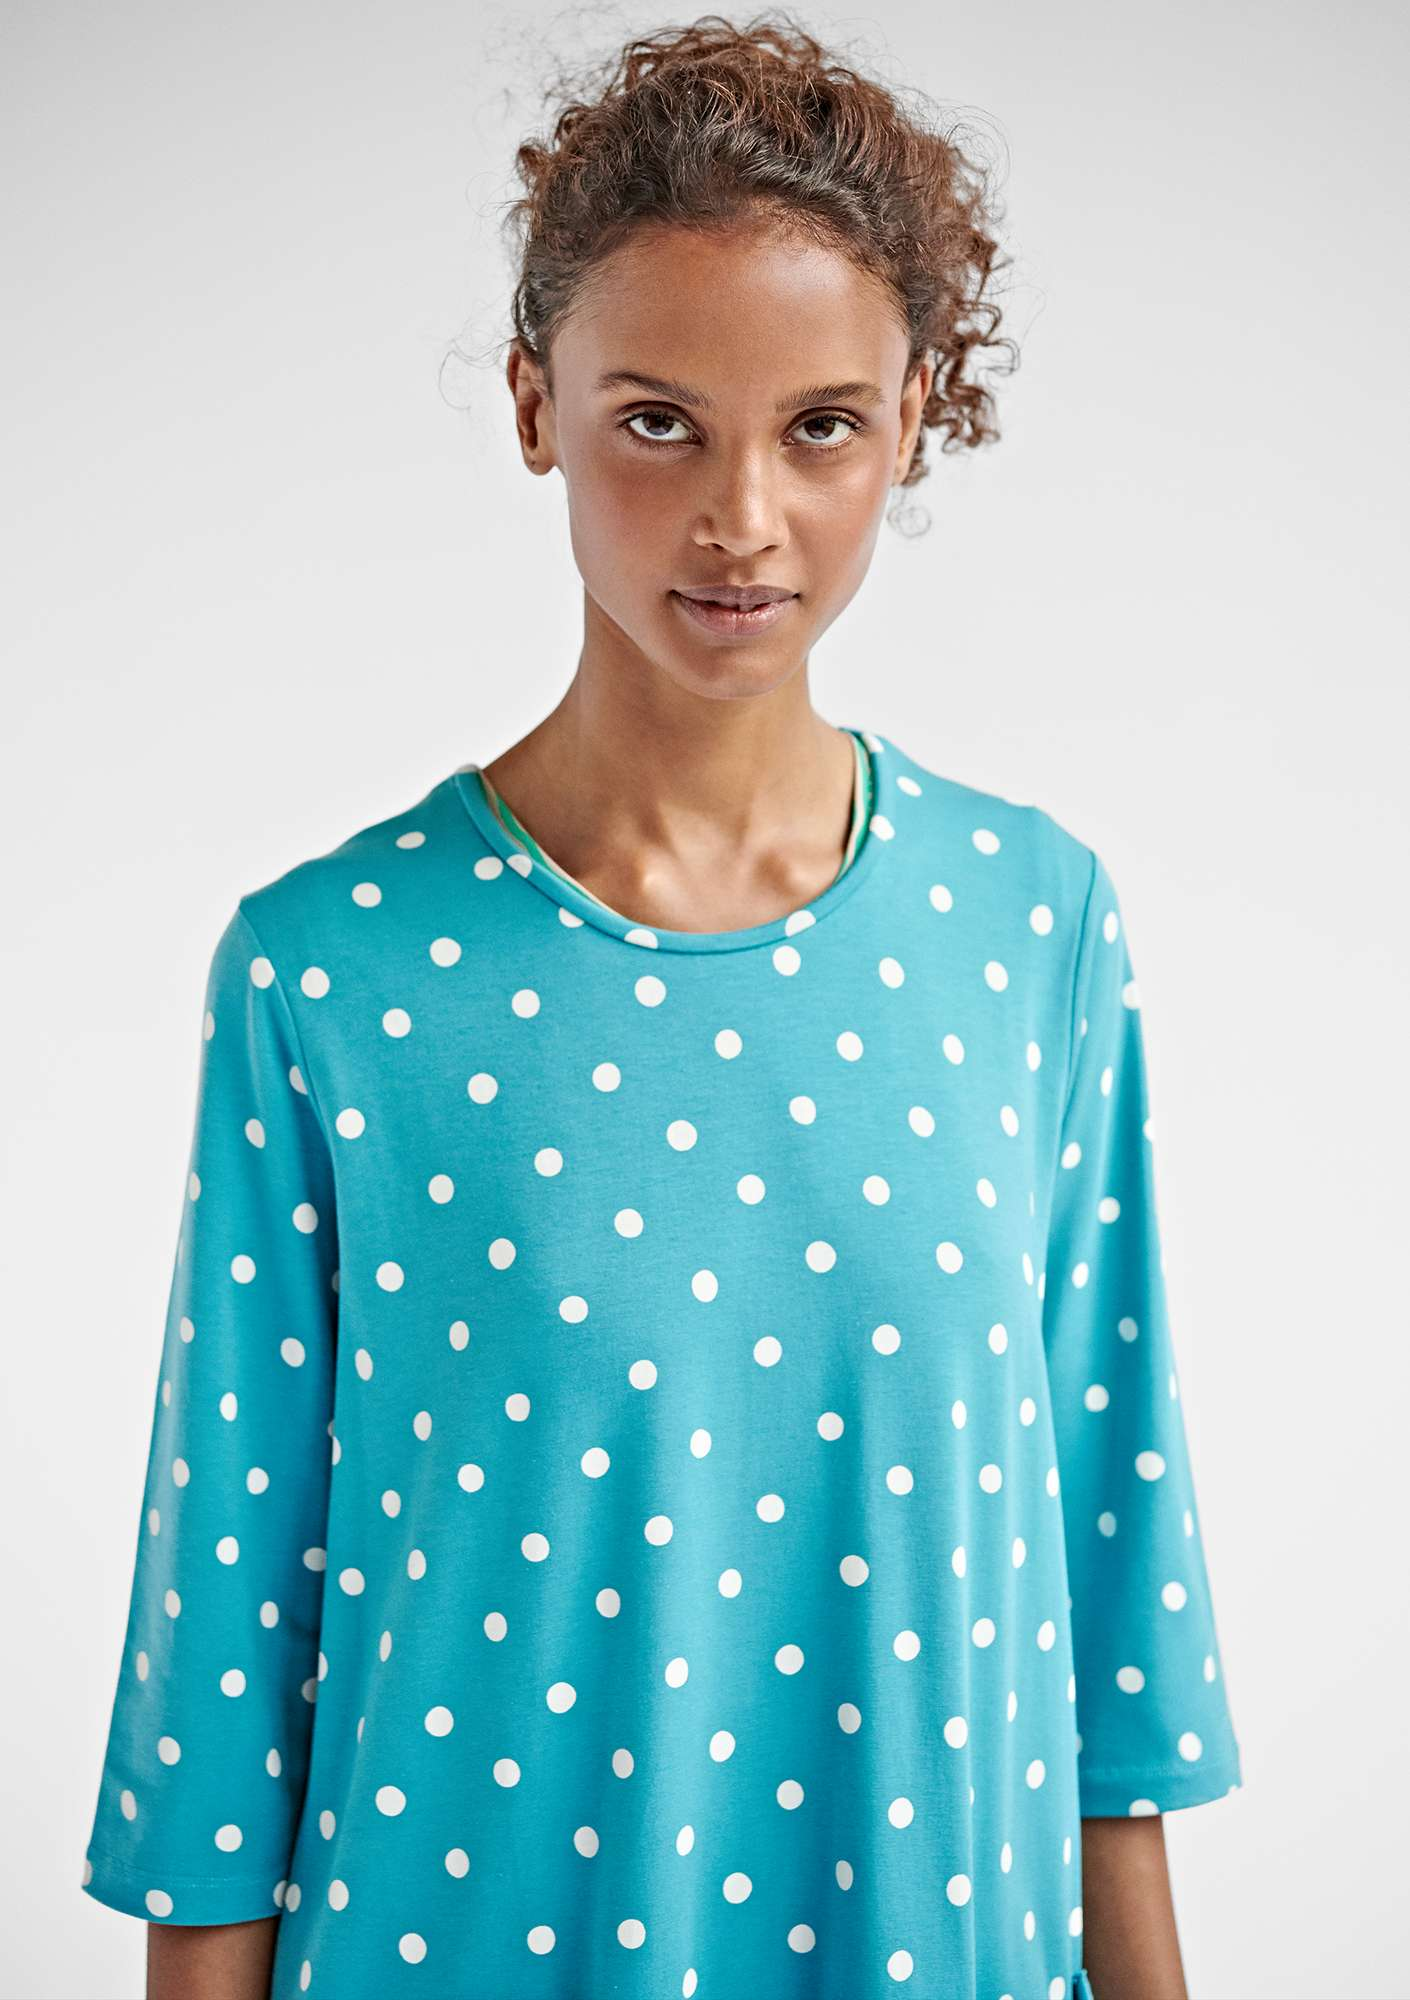 Mekko DOT turquoise/patterned